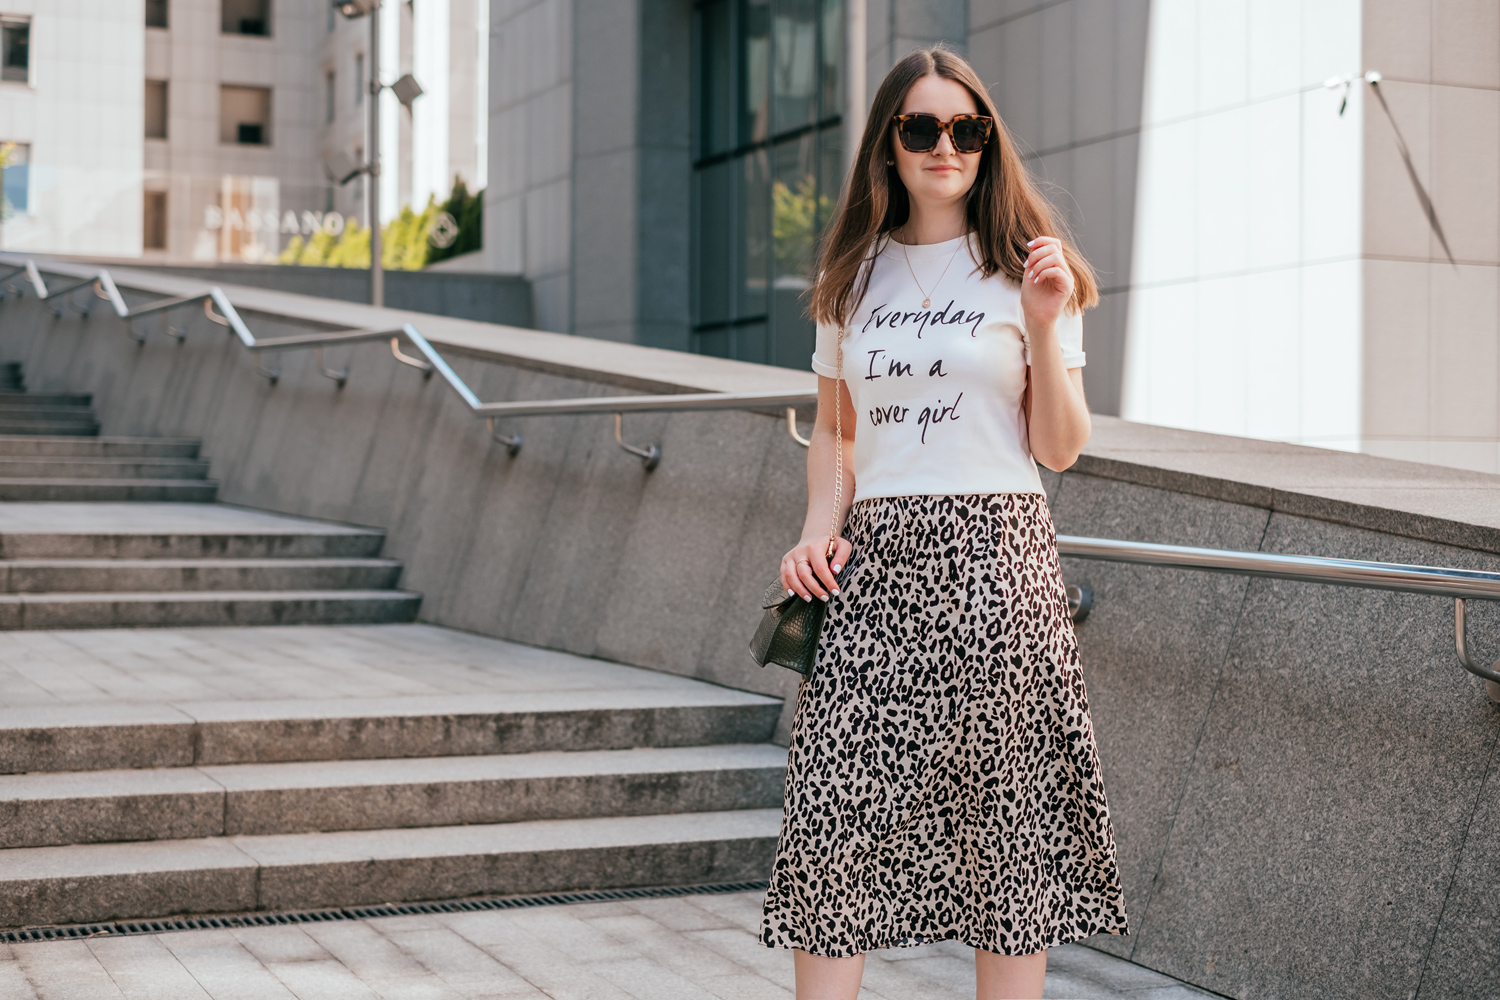 Leopard skirt outfit for summer